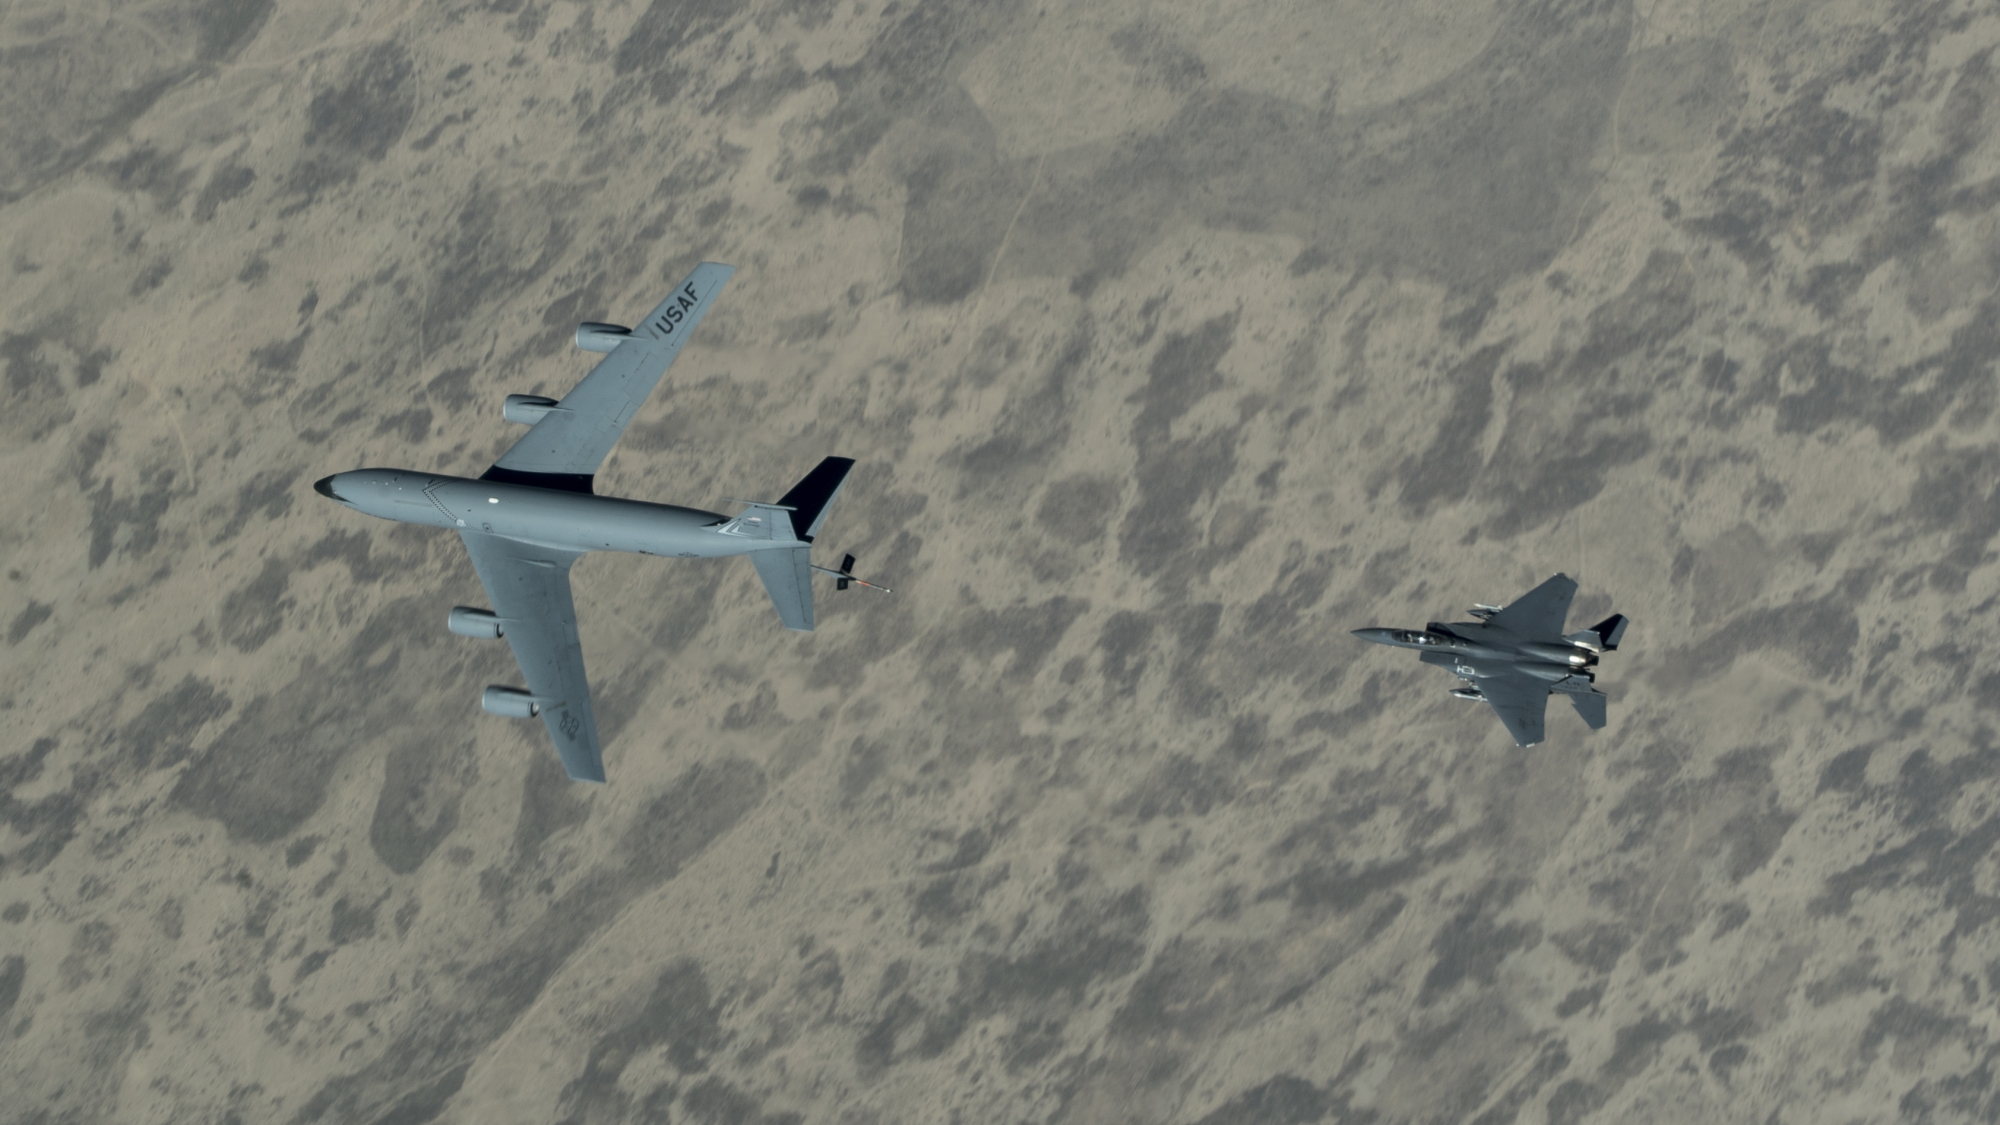 A U.S. Air Force F-15E Strike Eagle approaches a KC-135 Stratotanker over the U.S. Central Command area of responsibility on June 12, 2020. (Senior Airman Brandon Cribelar/Air Force)